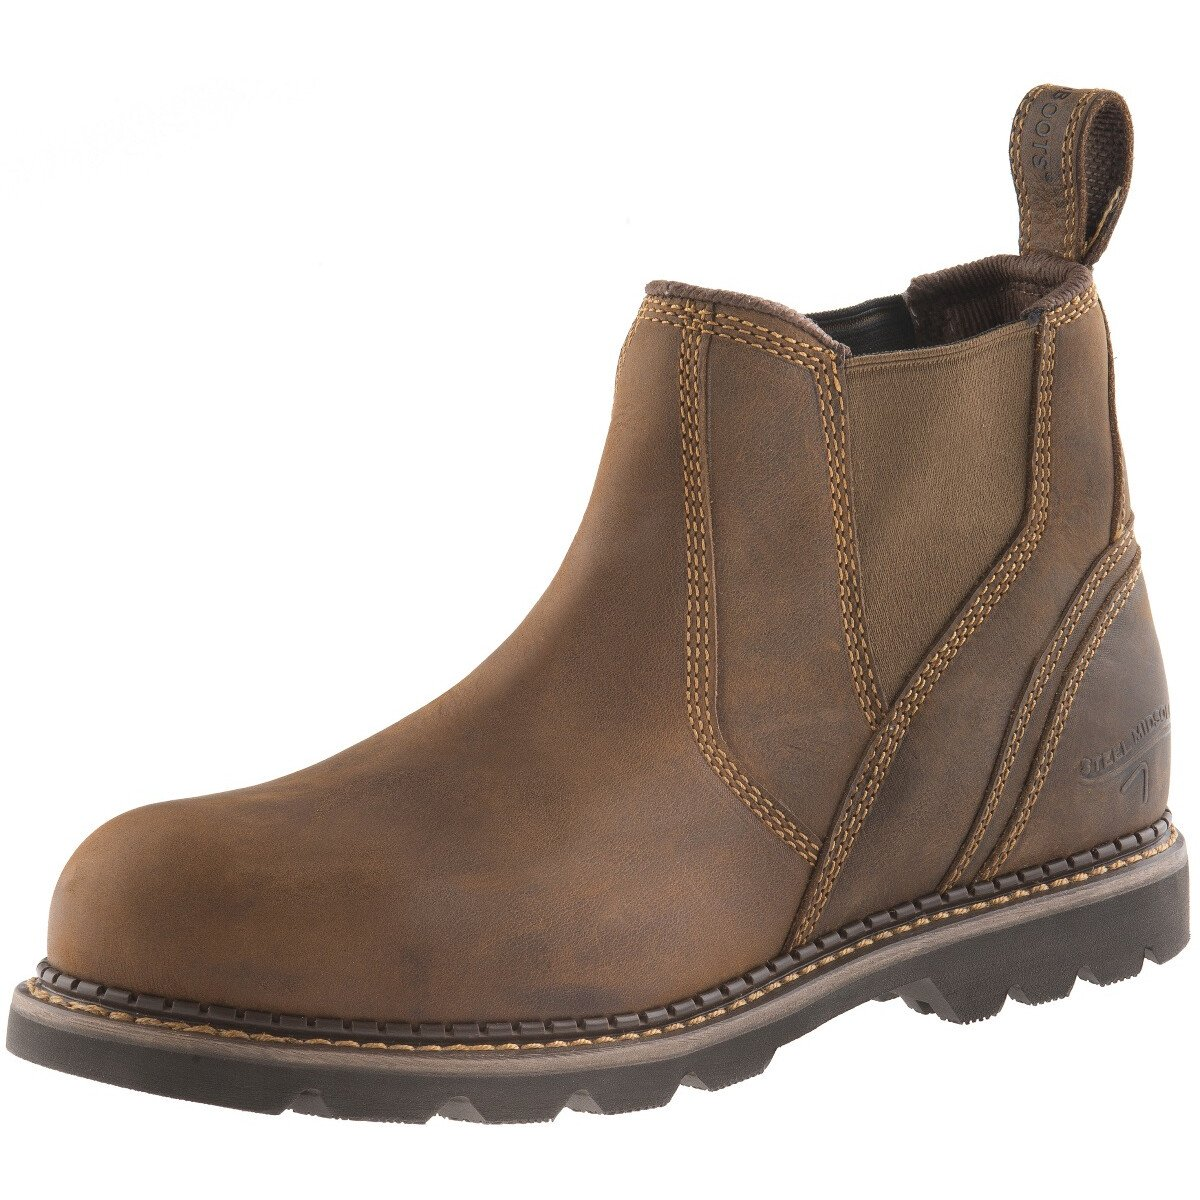 Buckler Boots B1555SM Brown Leather Goodyear Welted Safety Dealer Boot SB P HRO SRC